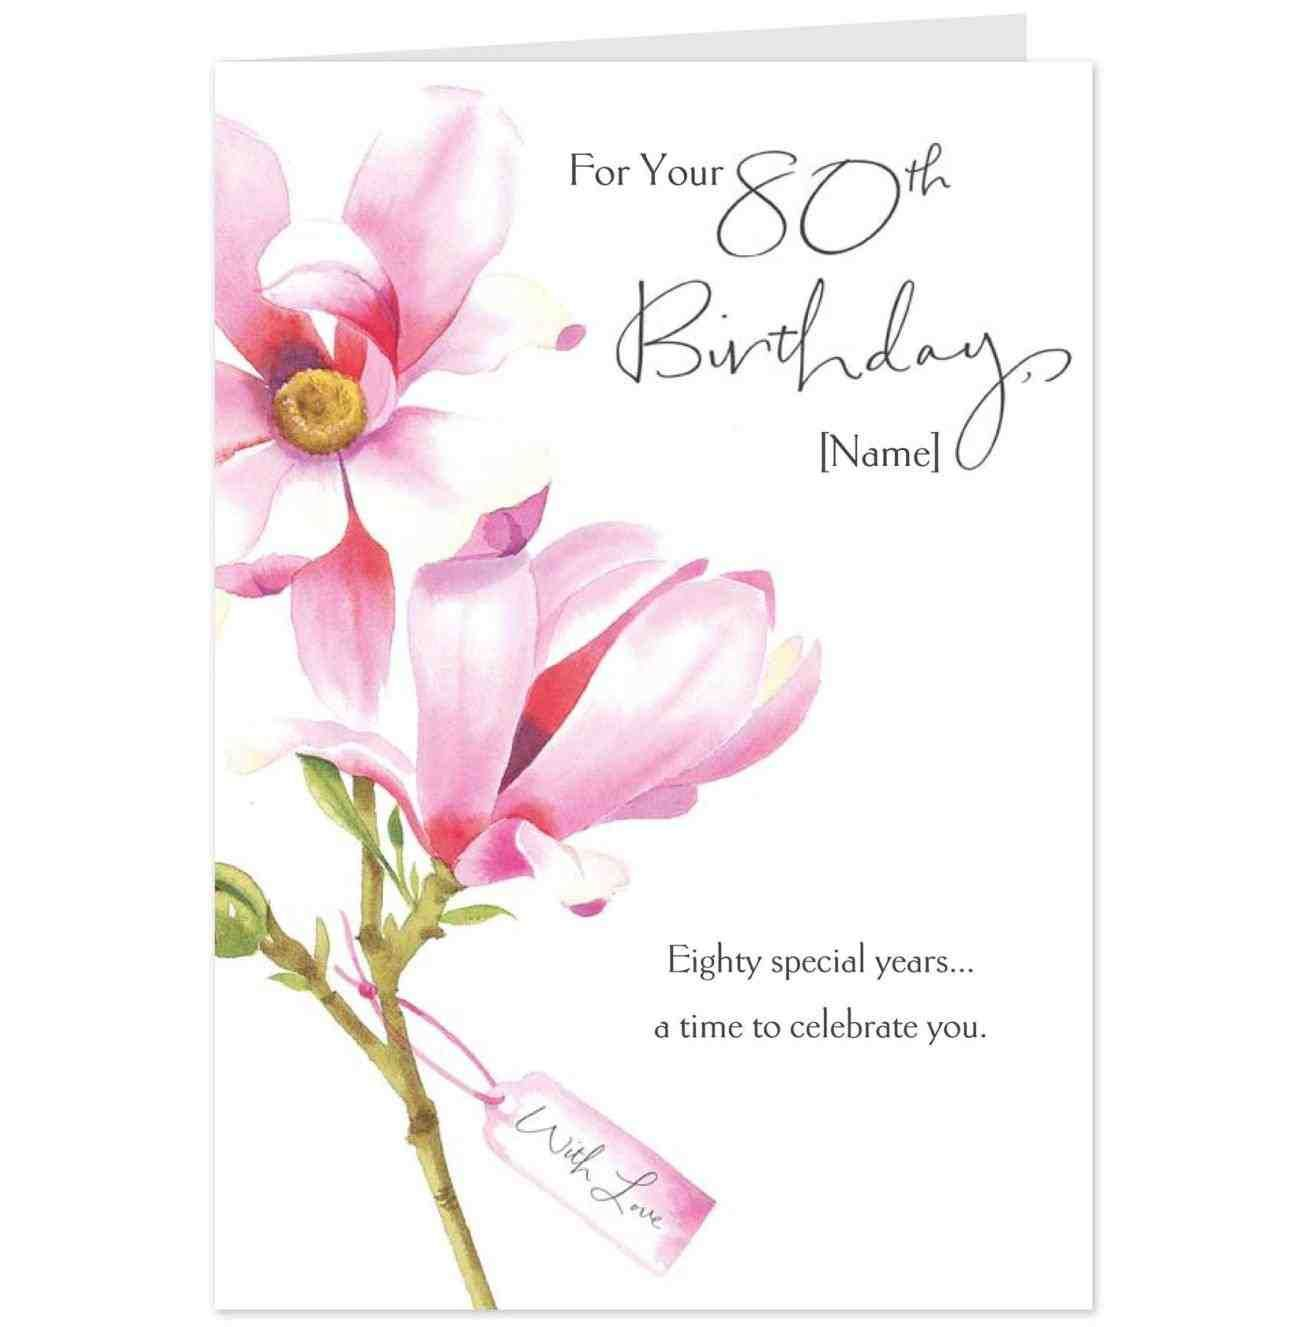 Birthday Card Corporate And Get Inspiration To Create The Birthday